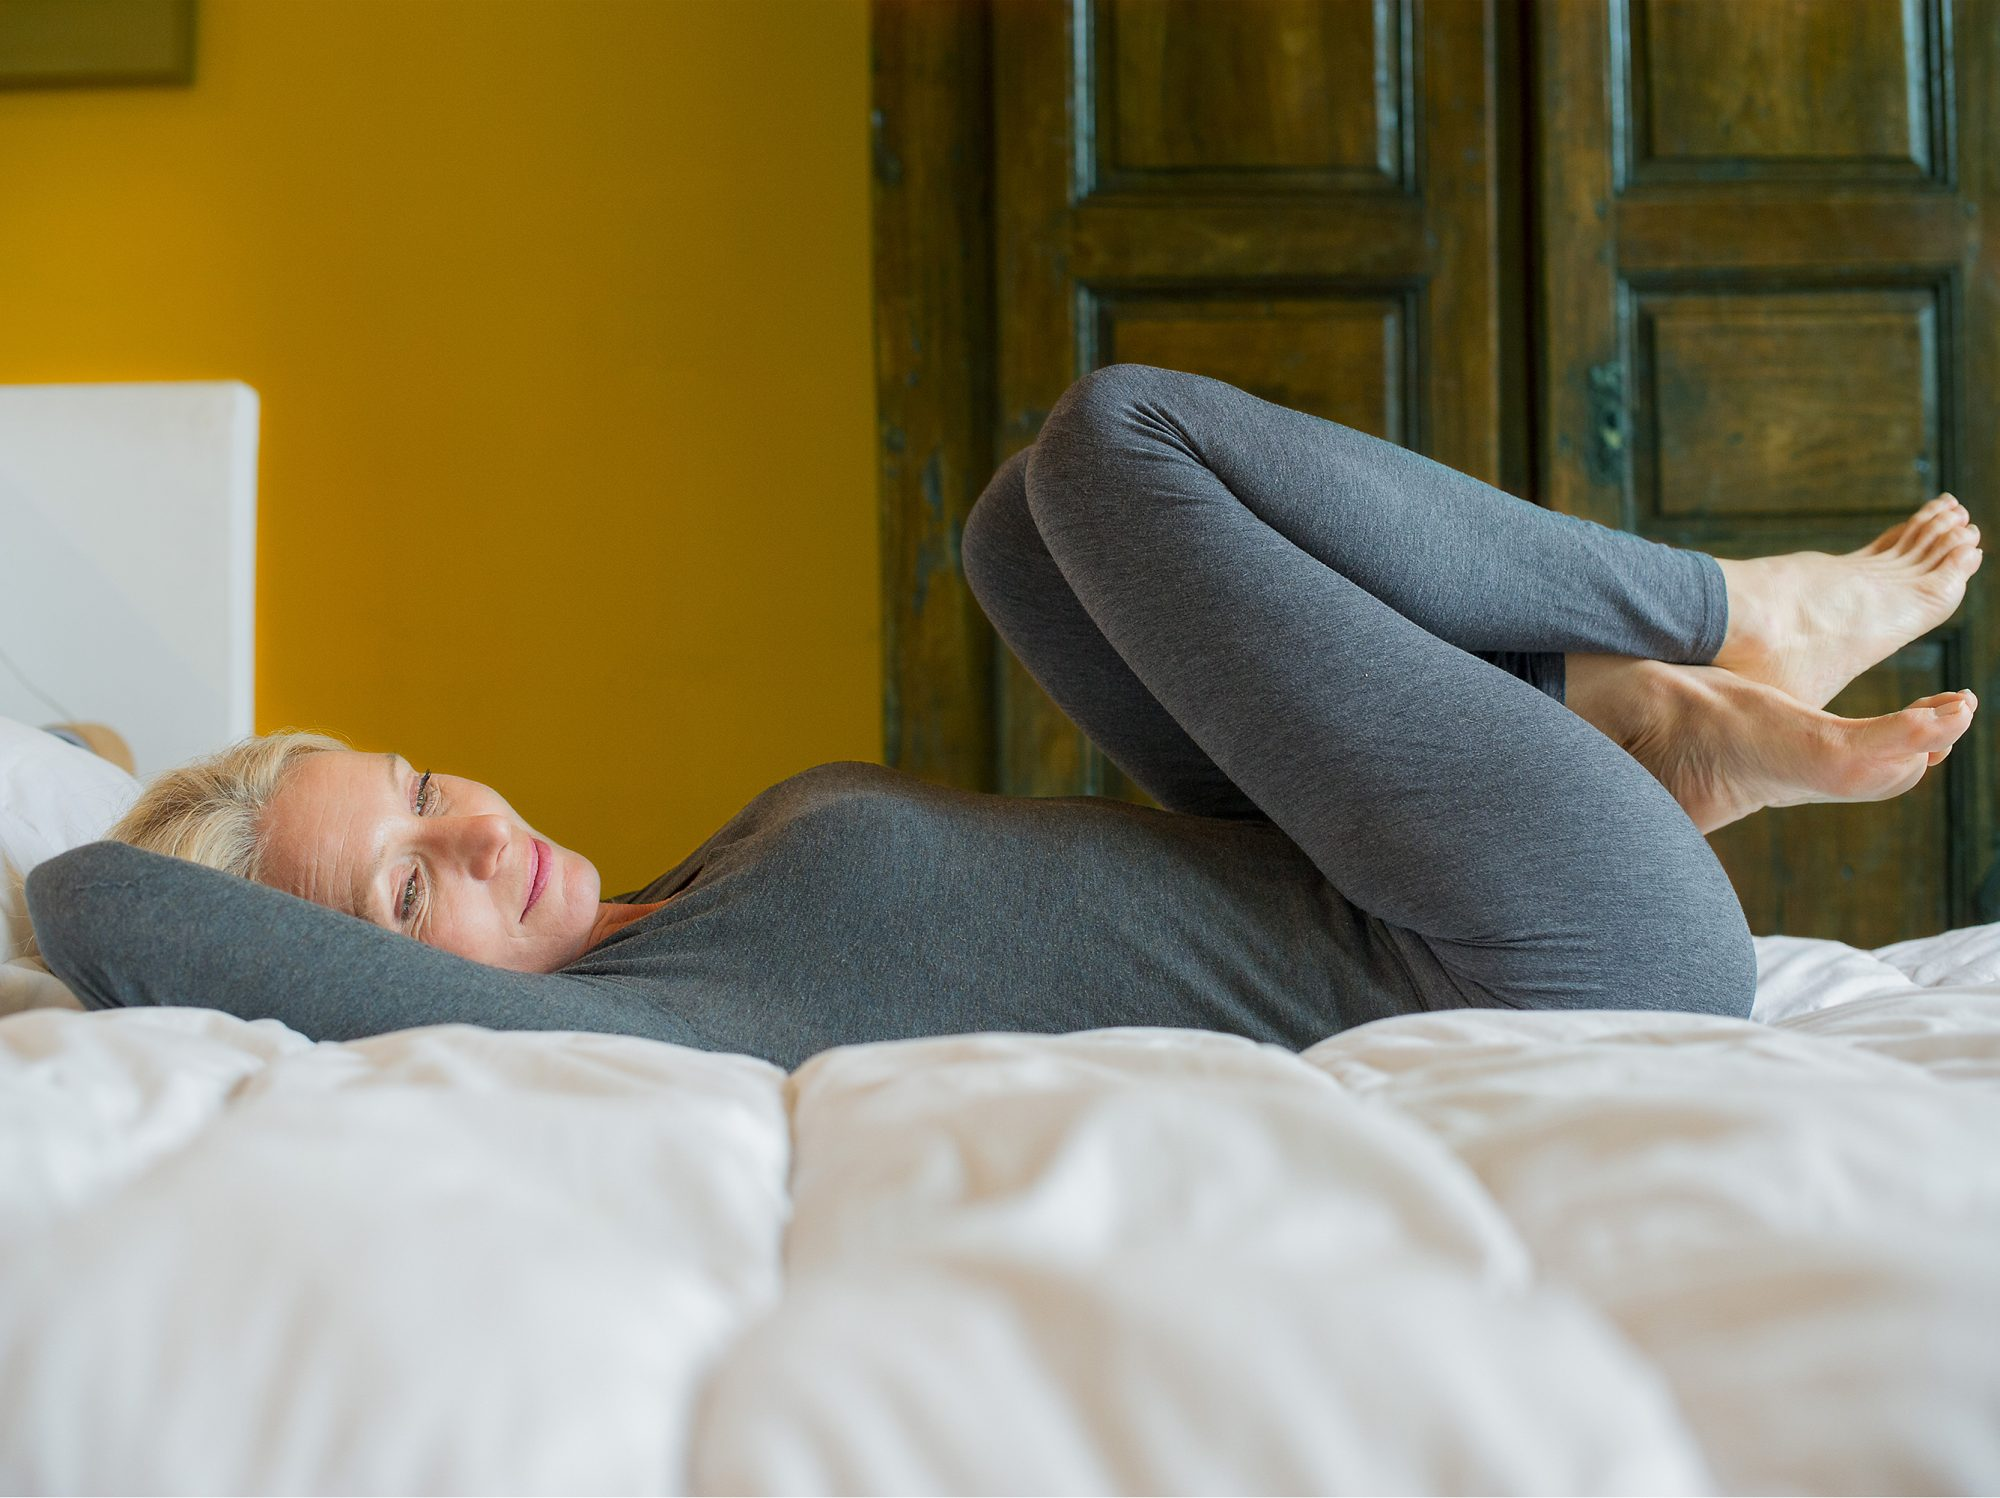 7 Calming Yoga Stretches You Can Do From Your Bed